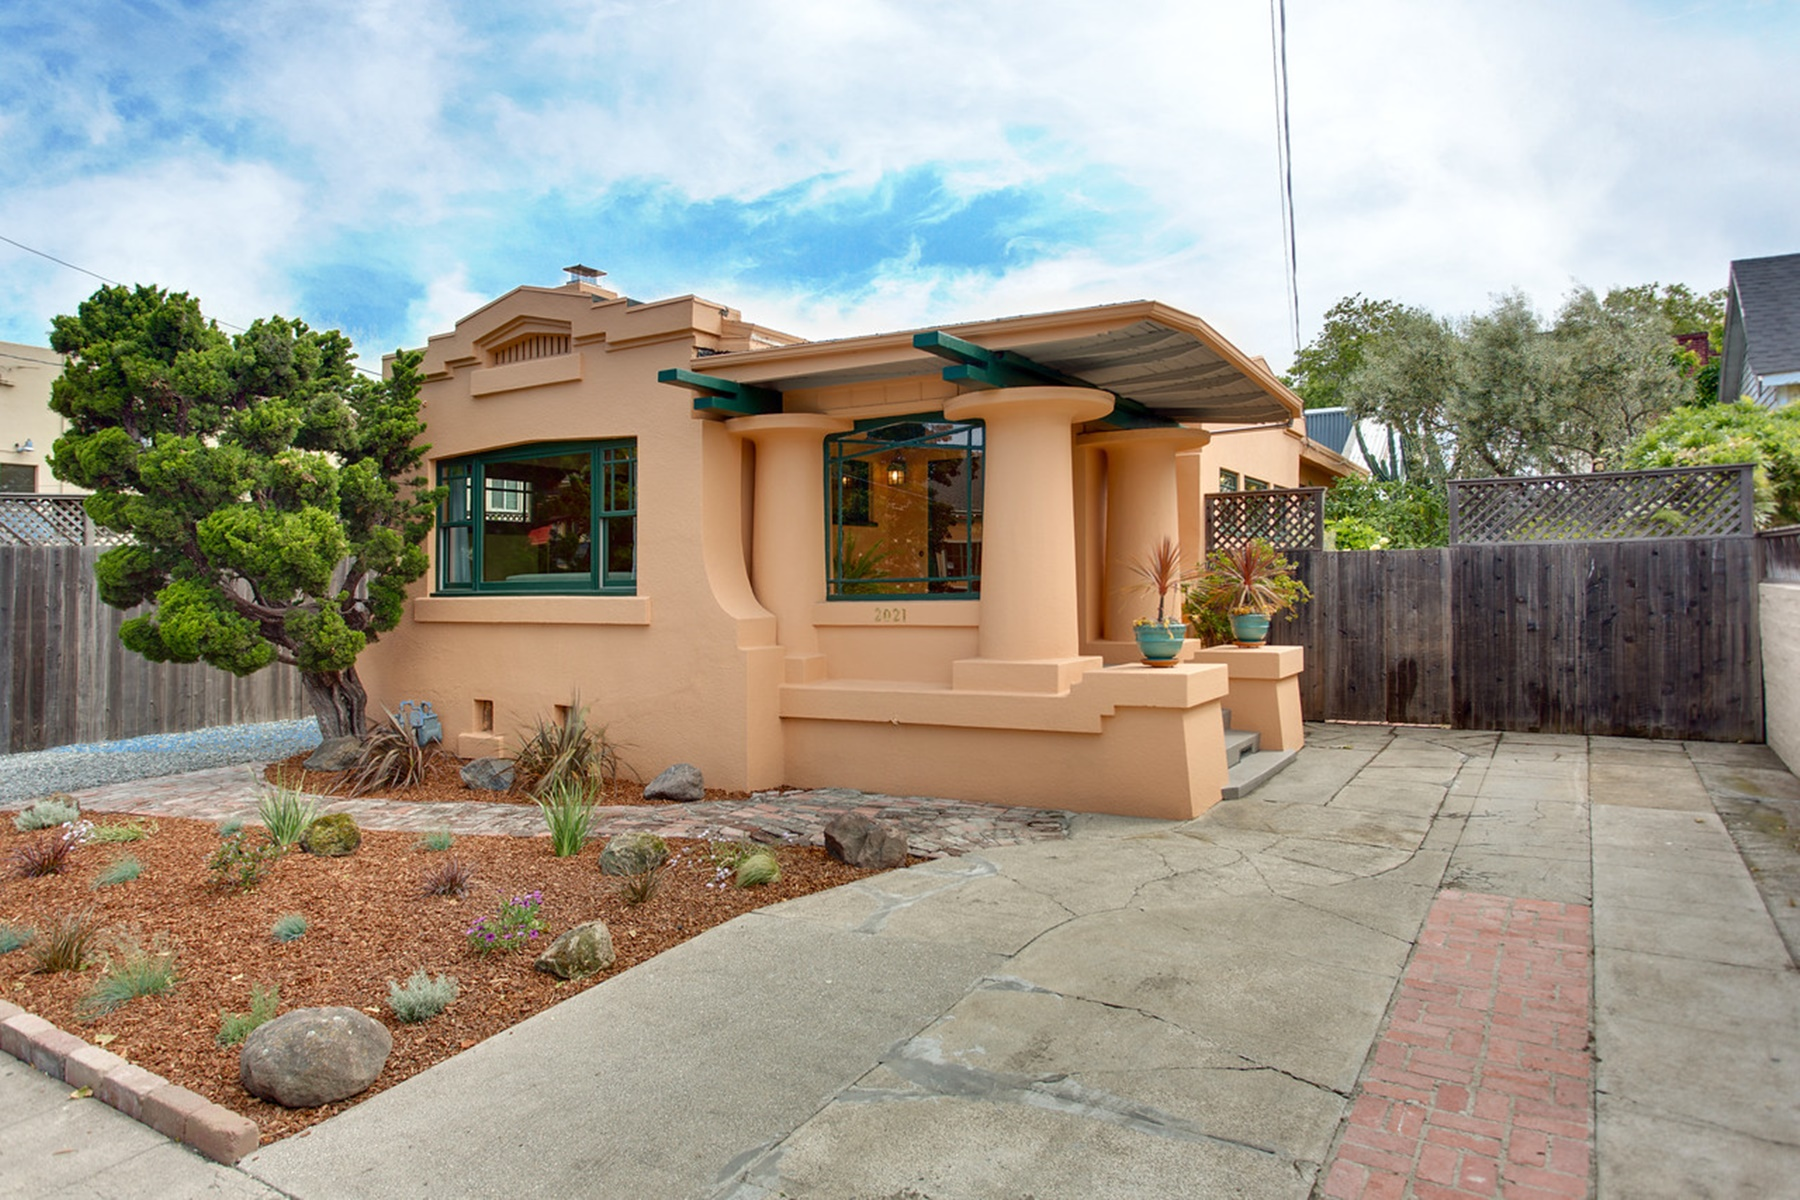 واحد منزل الأسرة للـ Sale في Amazing West Berkeley Bungalow 2021 10th Street Berkeley, California 94710 United States